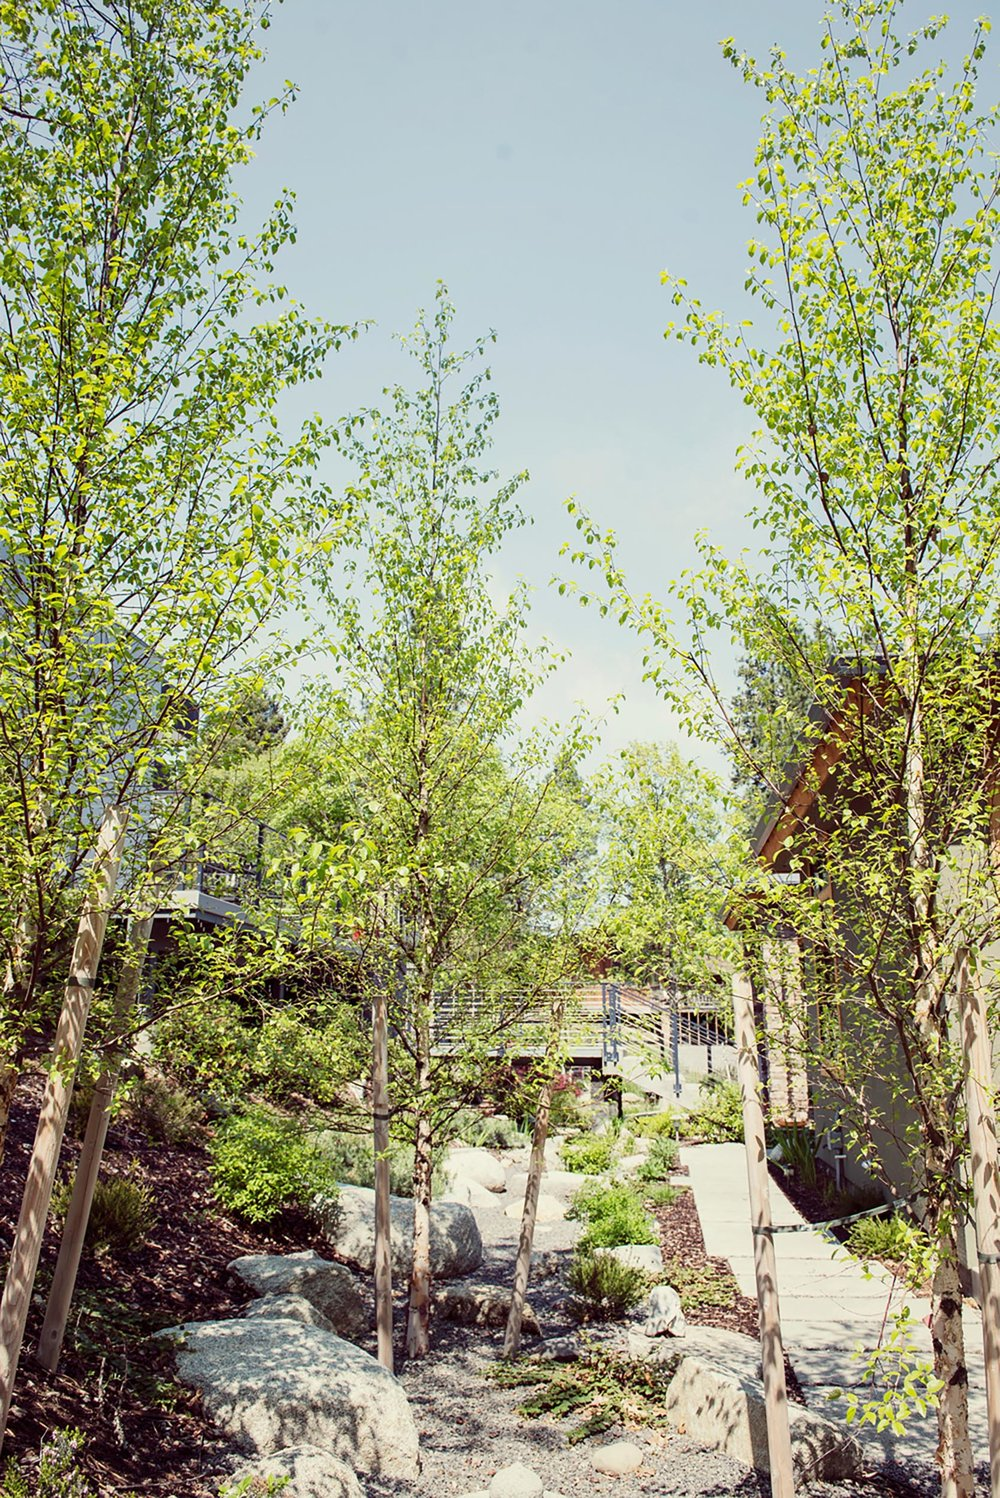 Rive birch + seasonal sustainable man made crushed gravel + granite boulder creek bed + segmented concrete pathways + concrete + steel stairs and brid